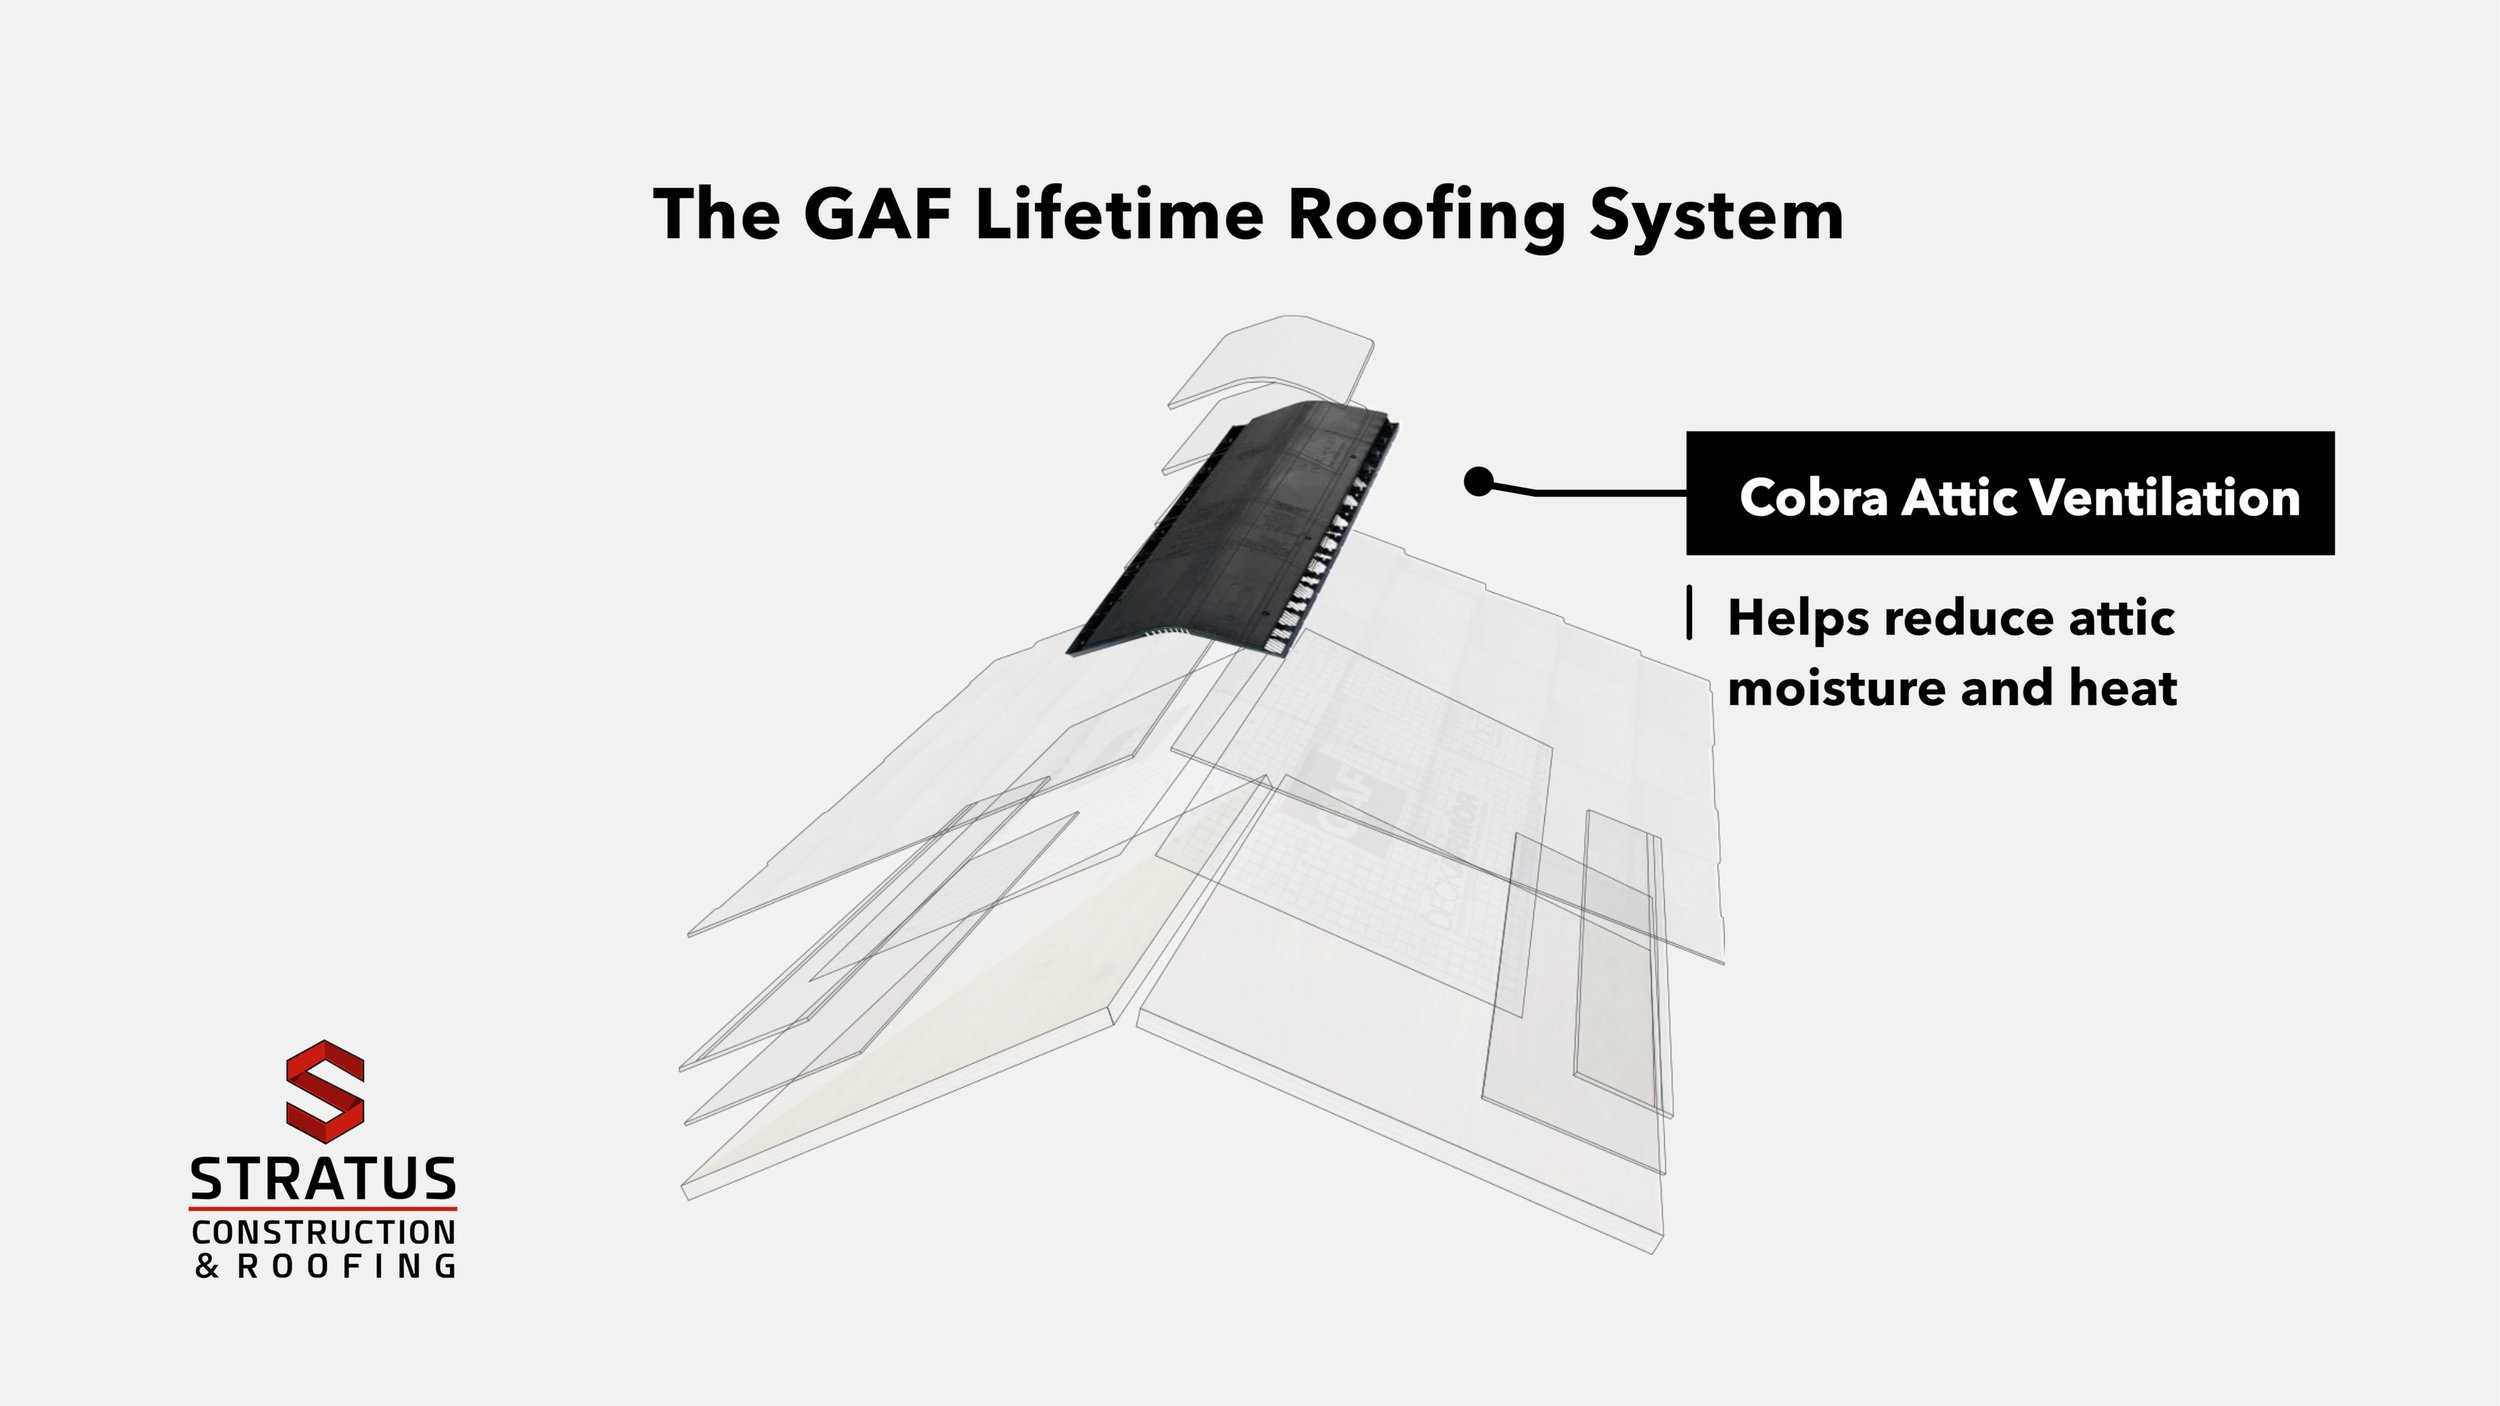 The GAF Lifetime Roofing System 003.jpg